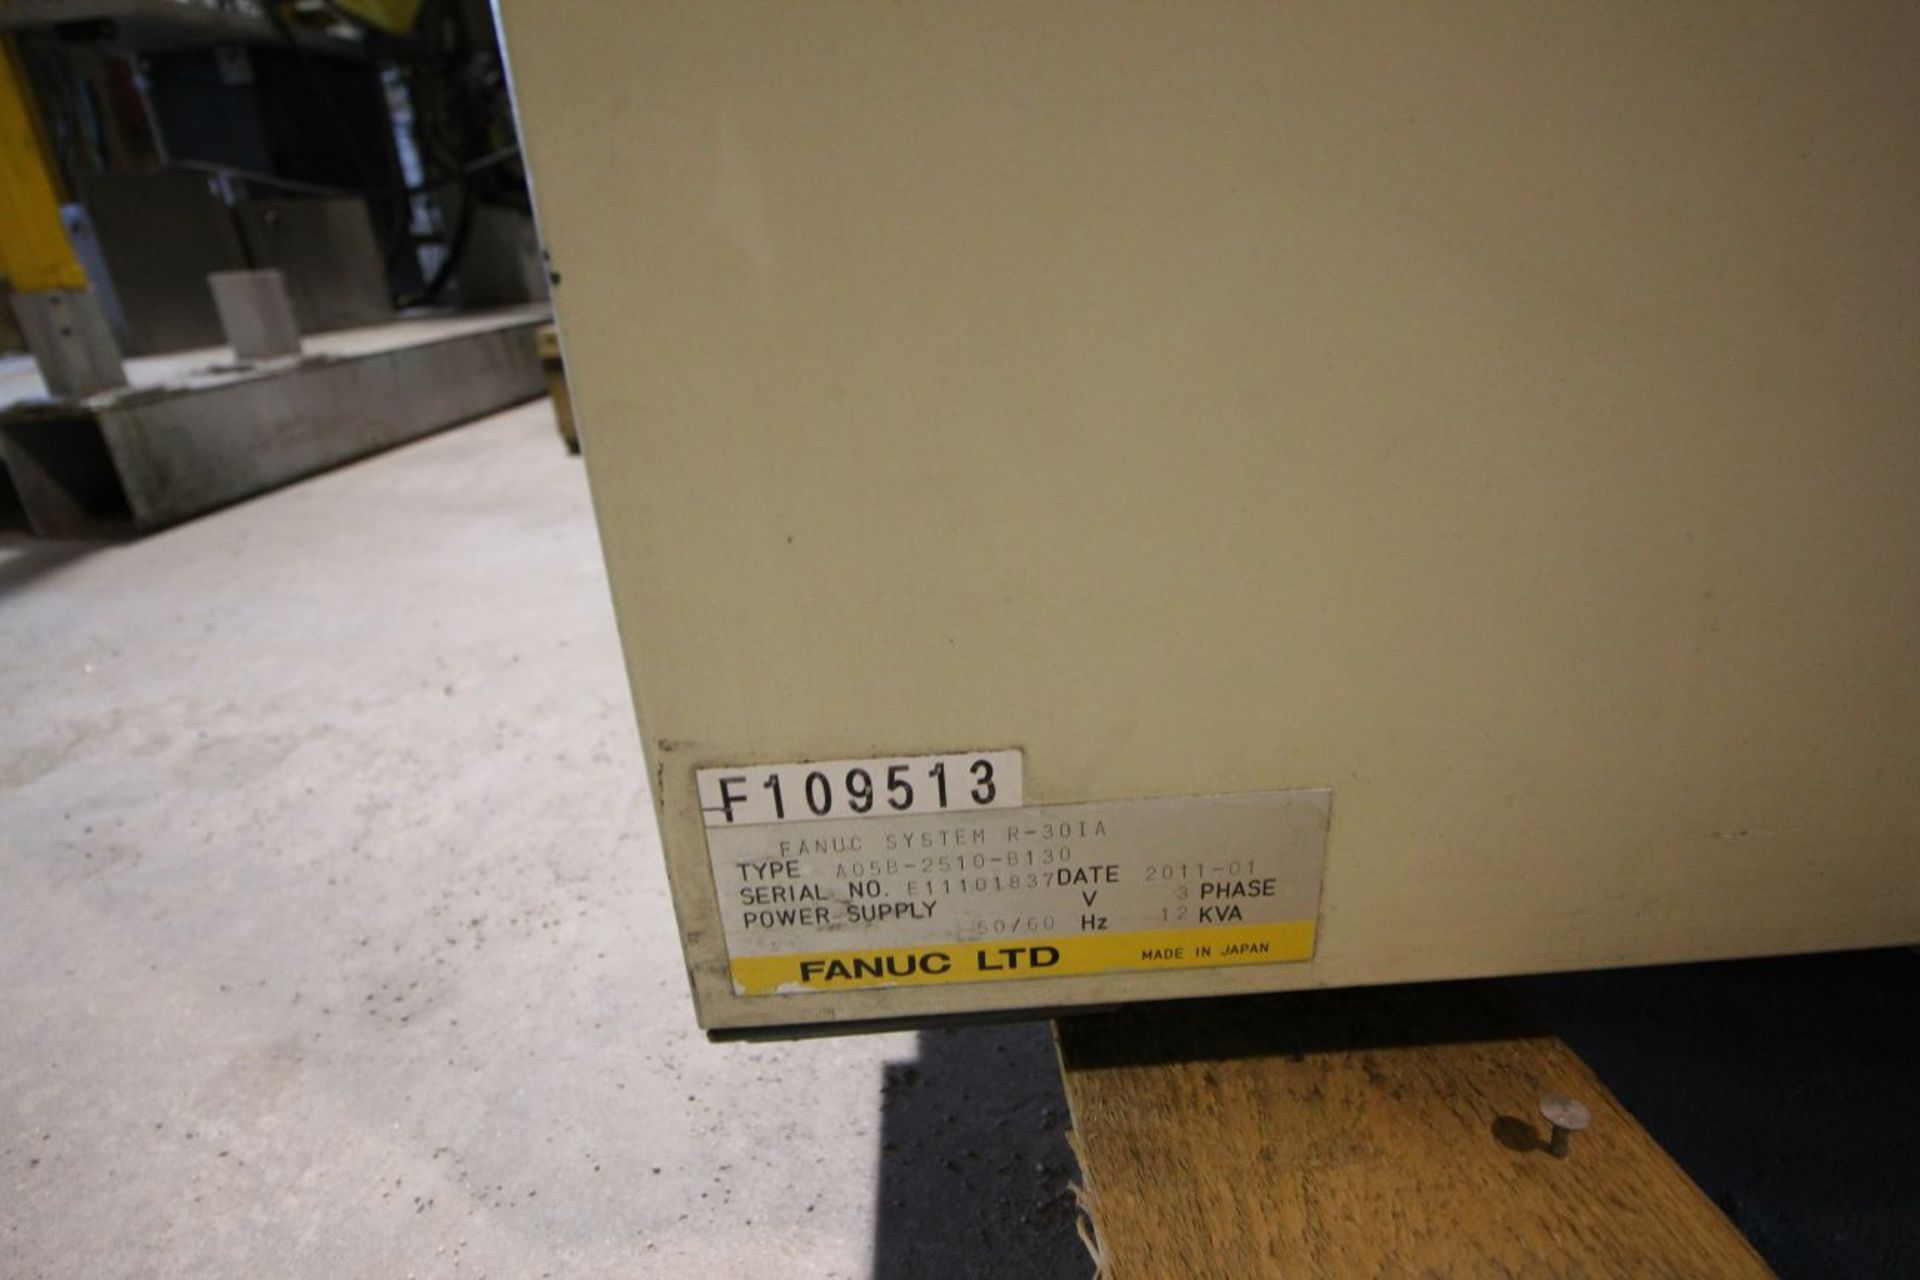 FANUC M710iC/50 6 AXIS CNC ROBOT WITH R30iA CONTROLLER AND VISION CONNECTIONS, SN 109513, YEAR 2011 - Image 7 of 8